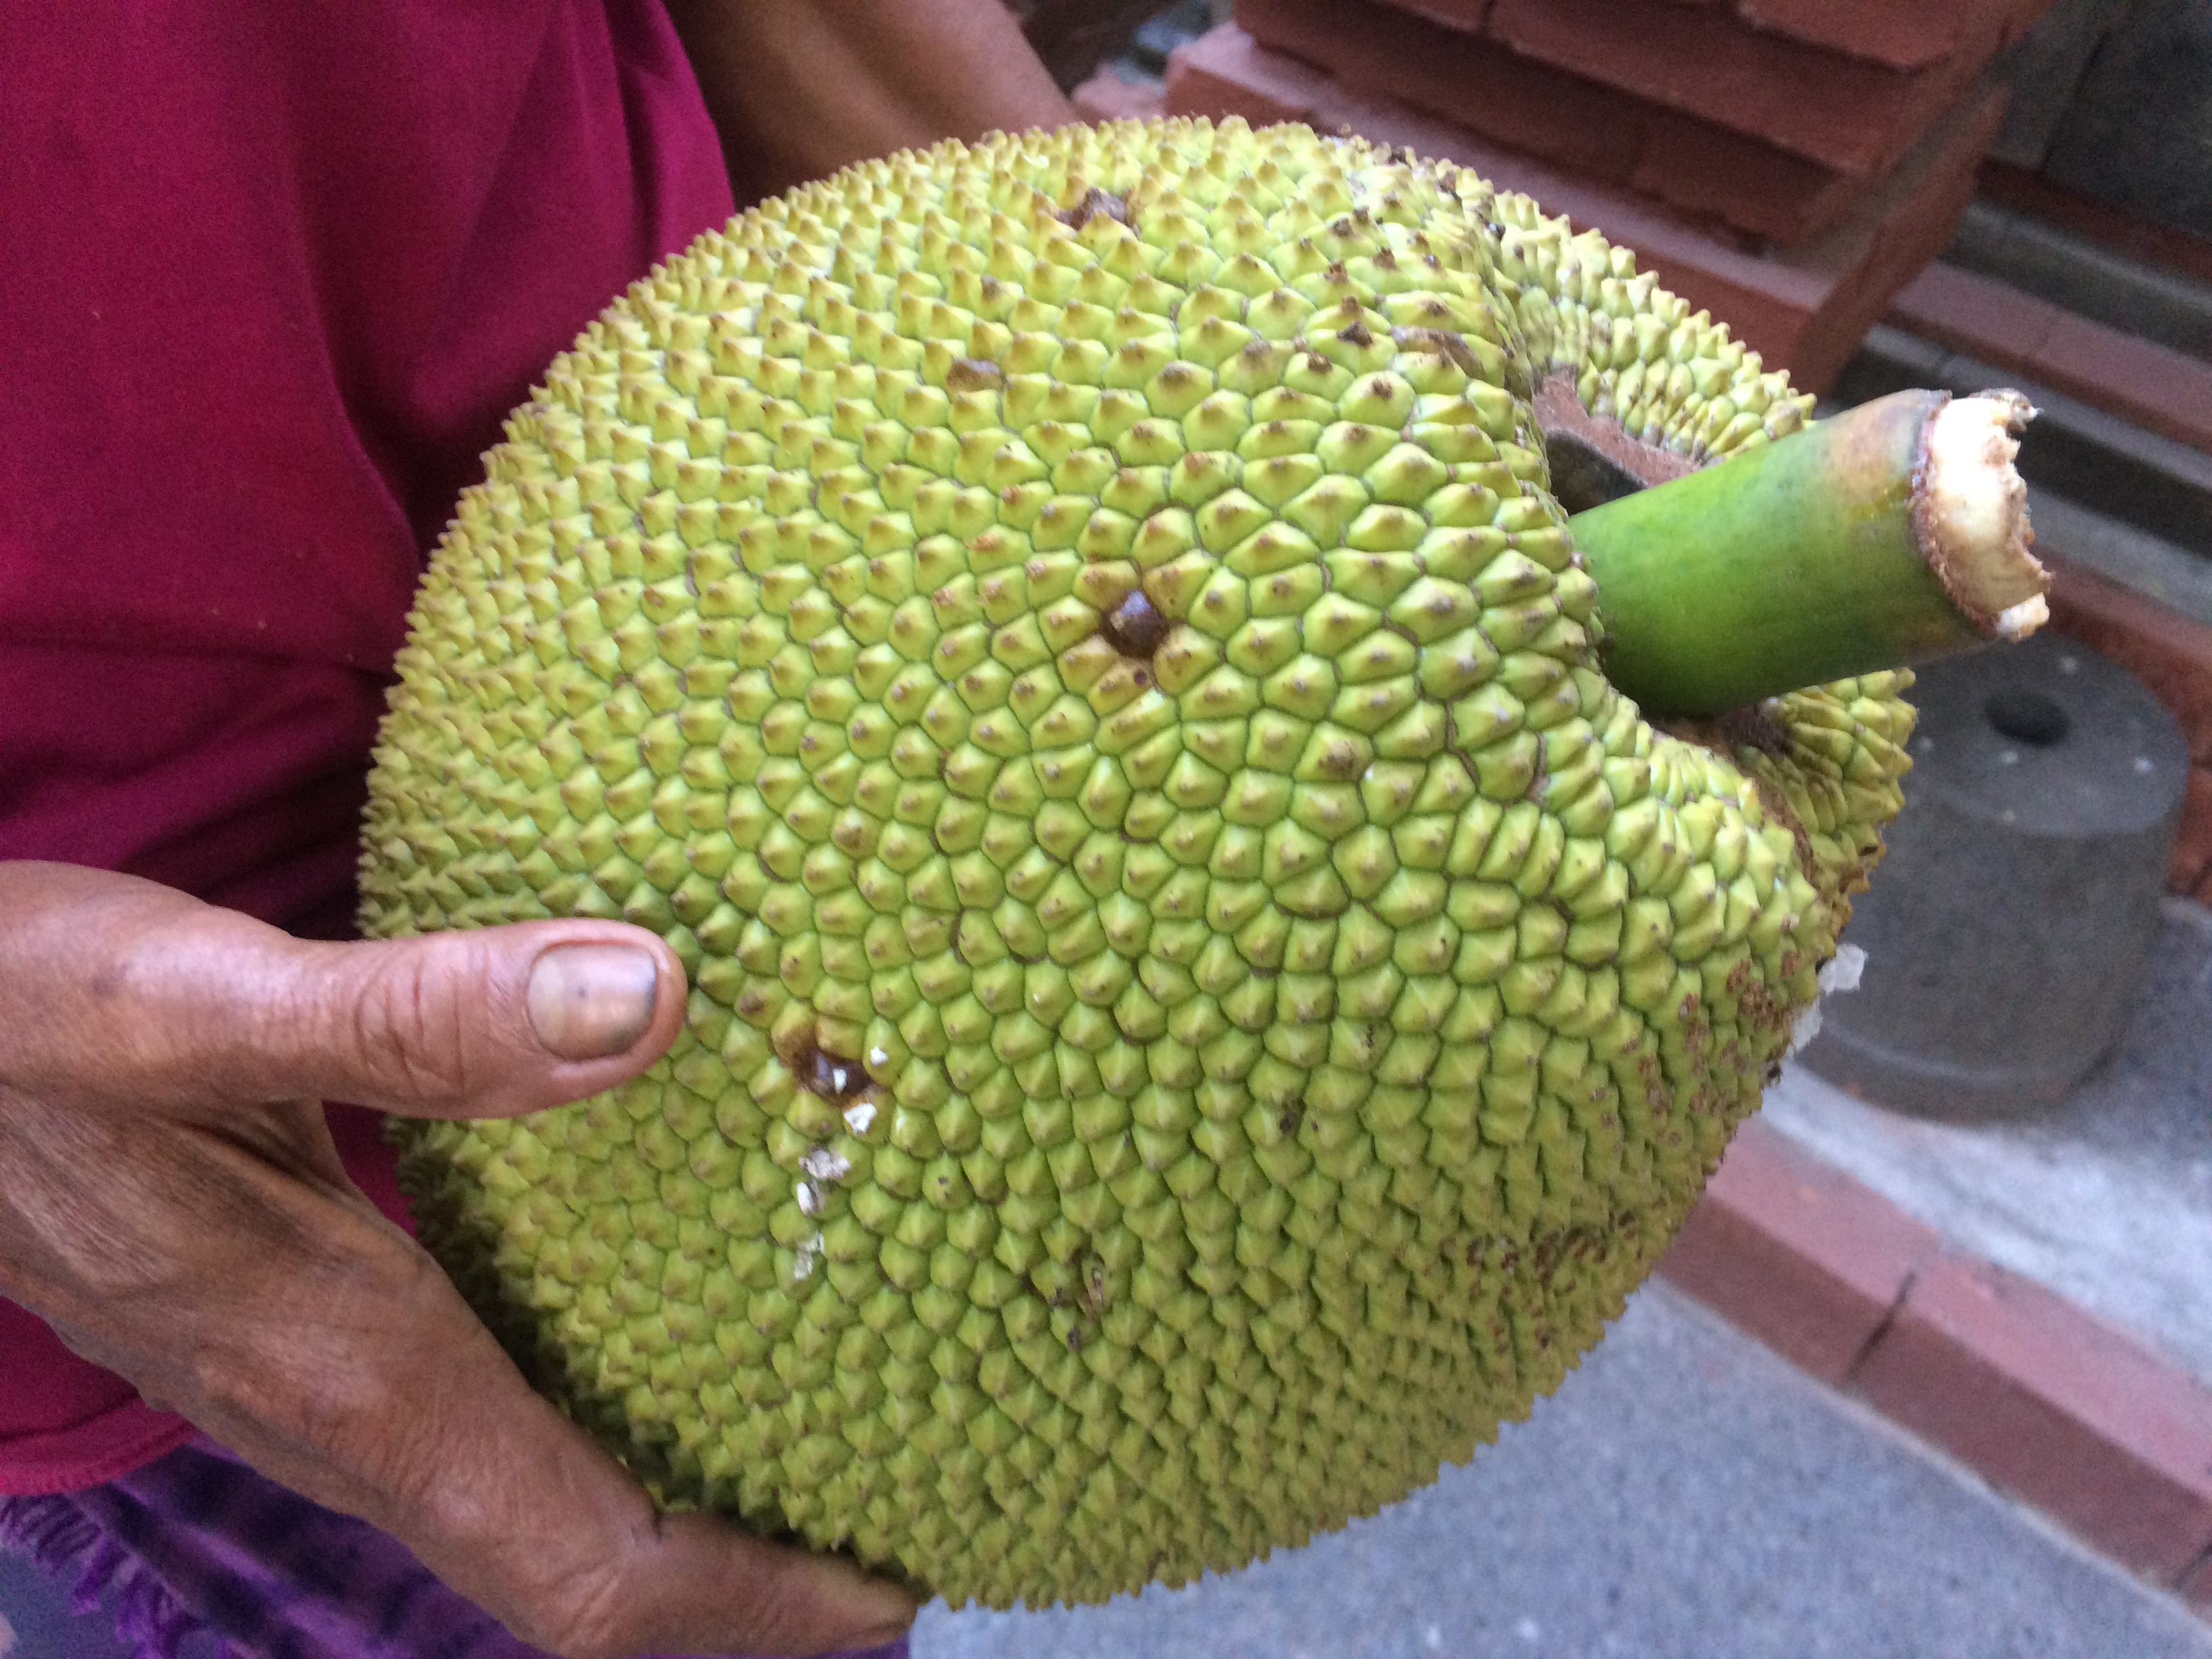 Freshly picked jackfruit!